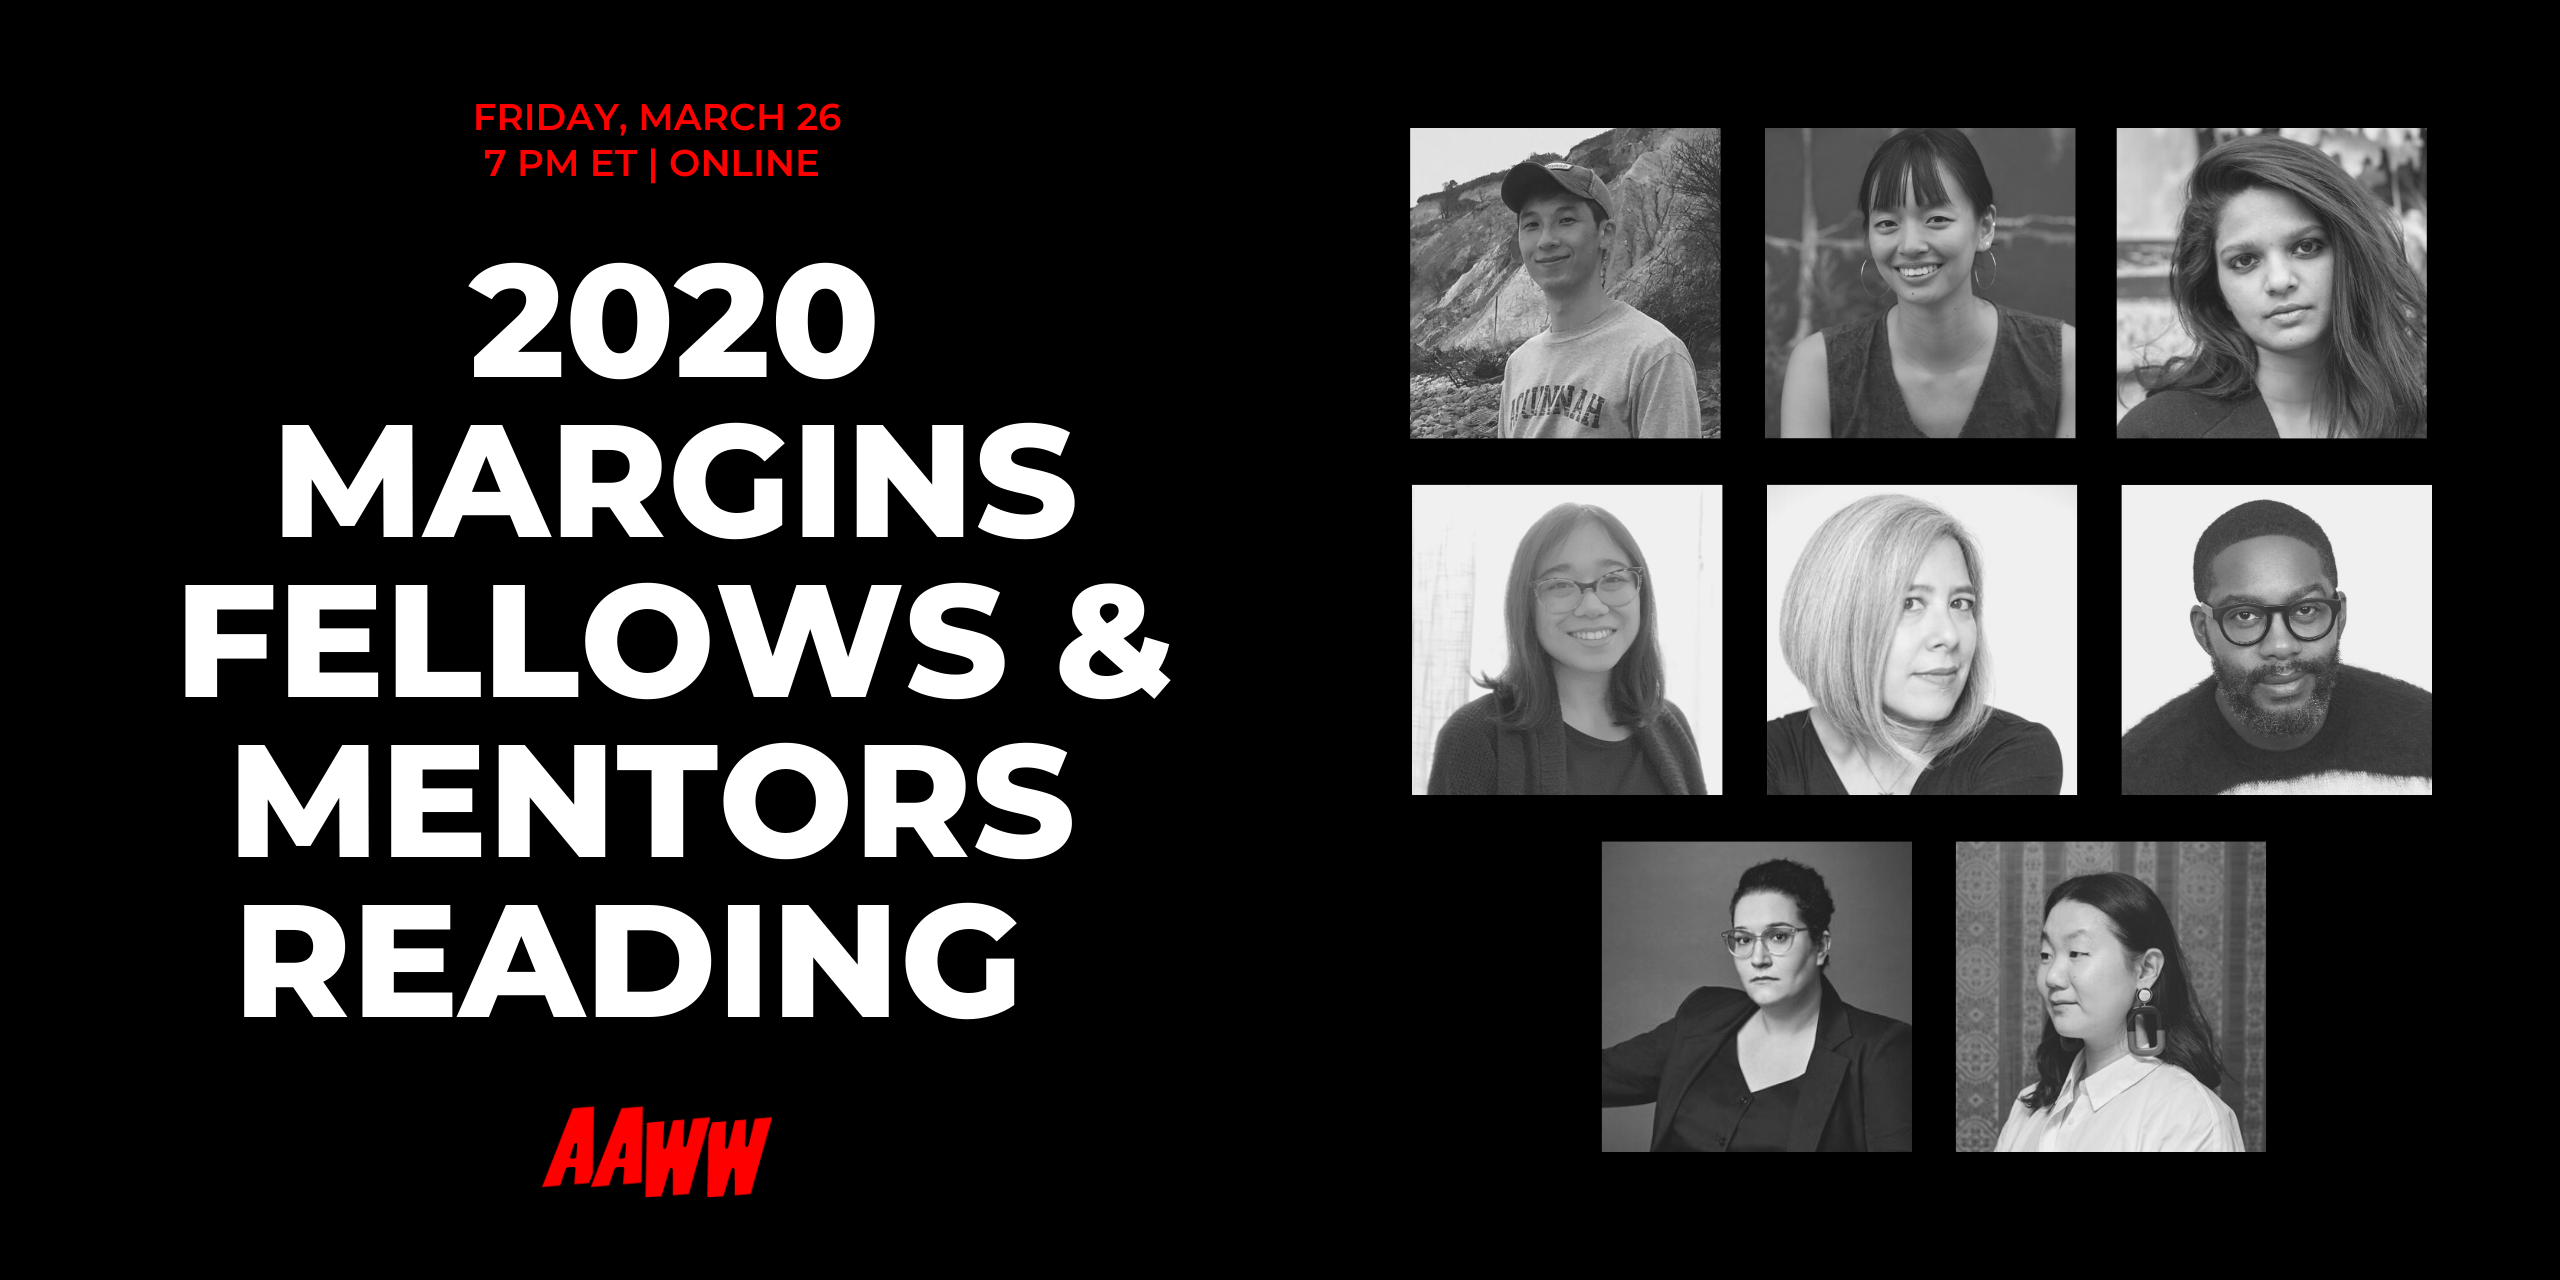 2020 Margins Fellows and Mentors Reading